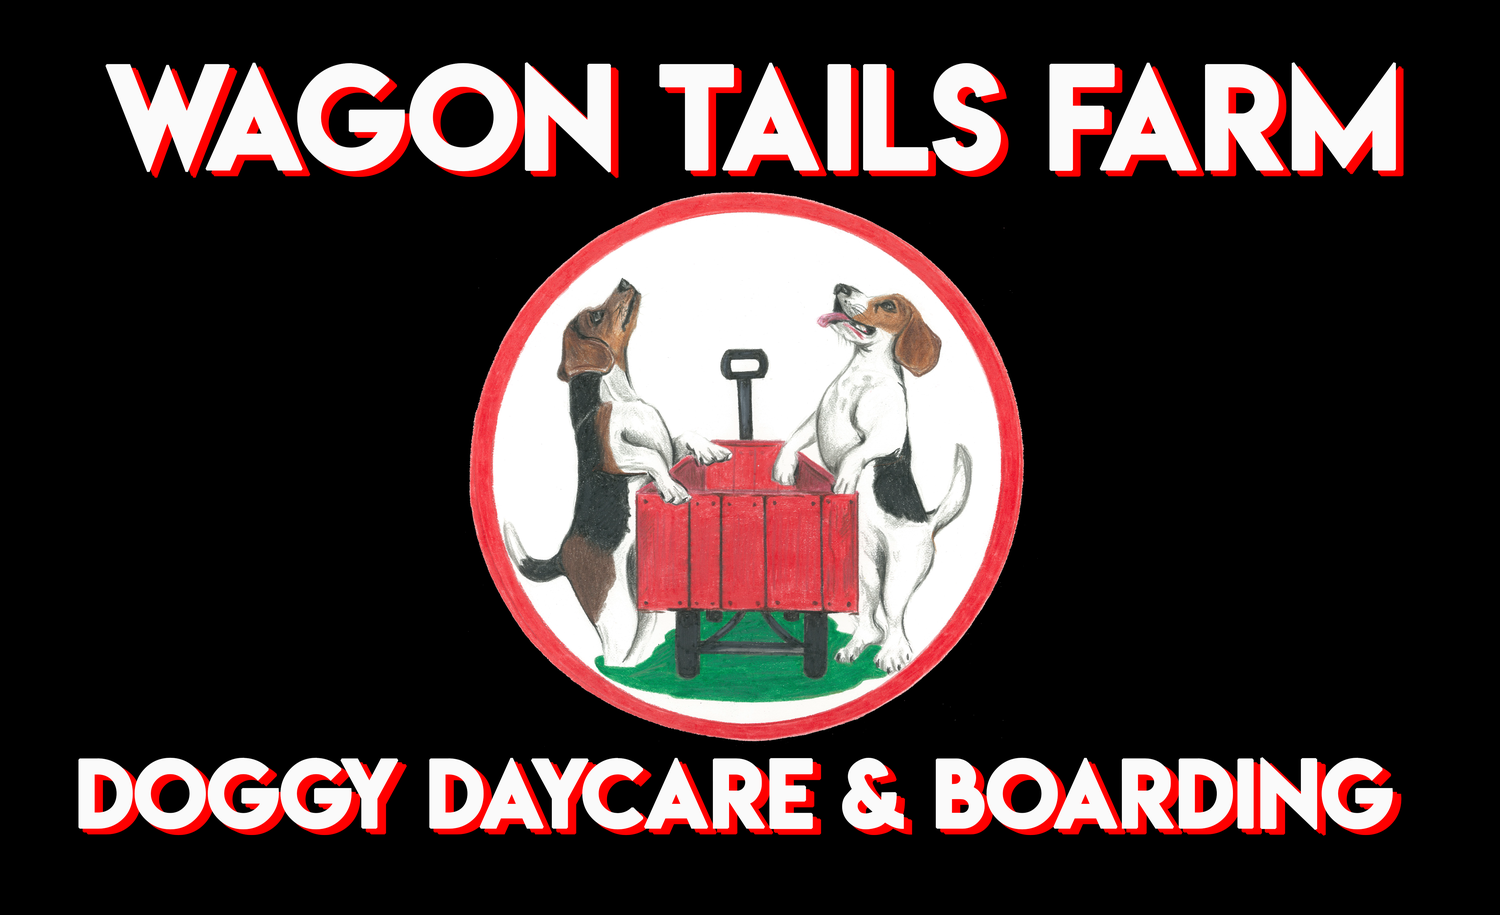 Wagon Tails Farm